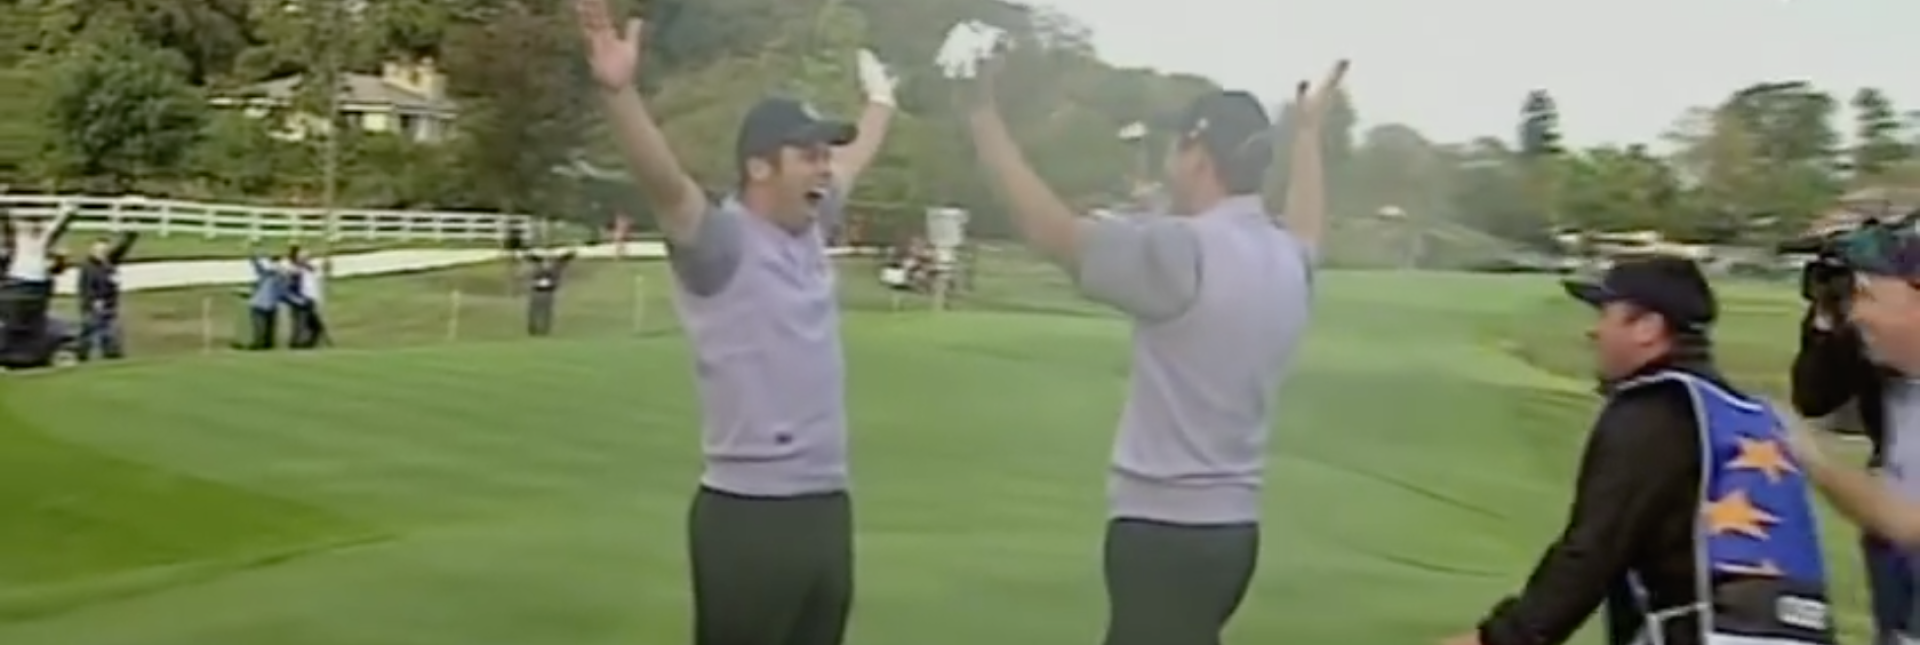 Paul-Casey-Ace-Ryder-Cup.png